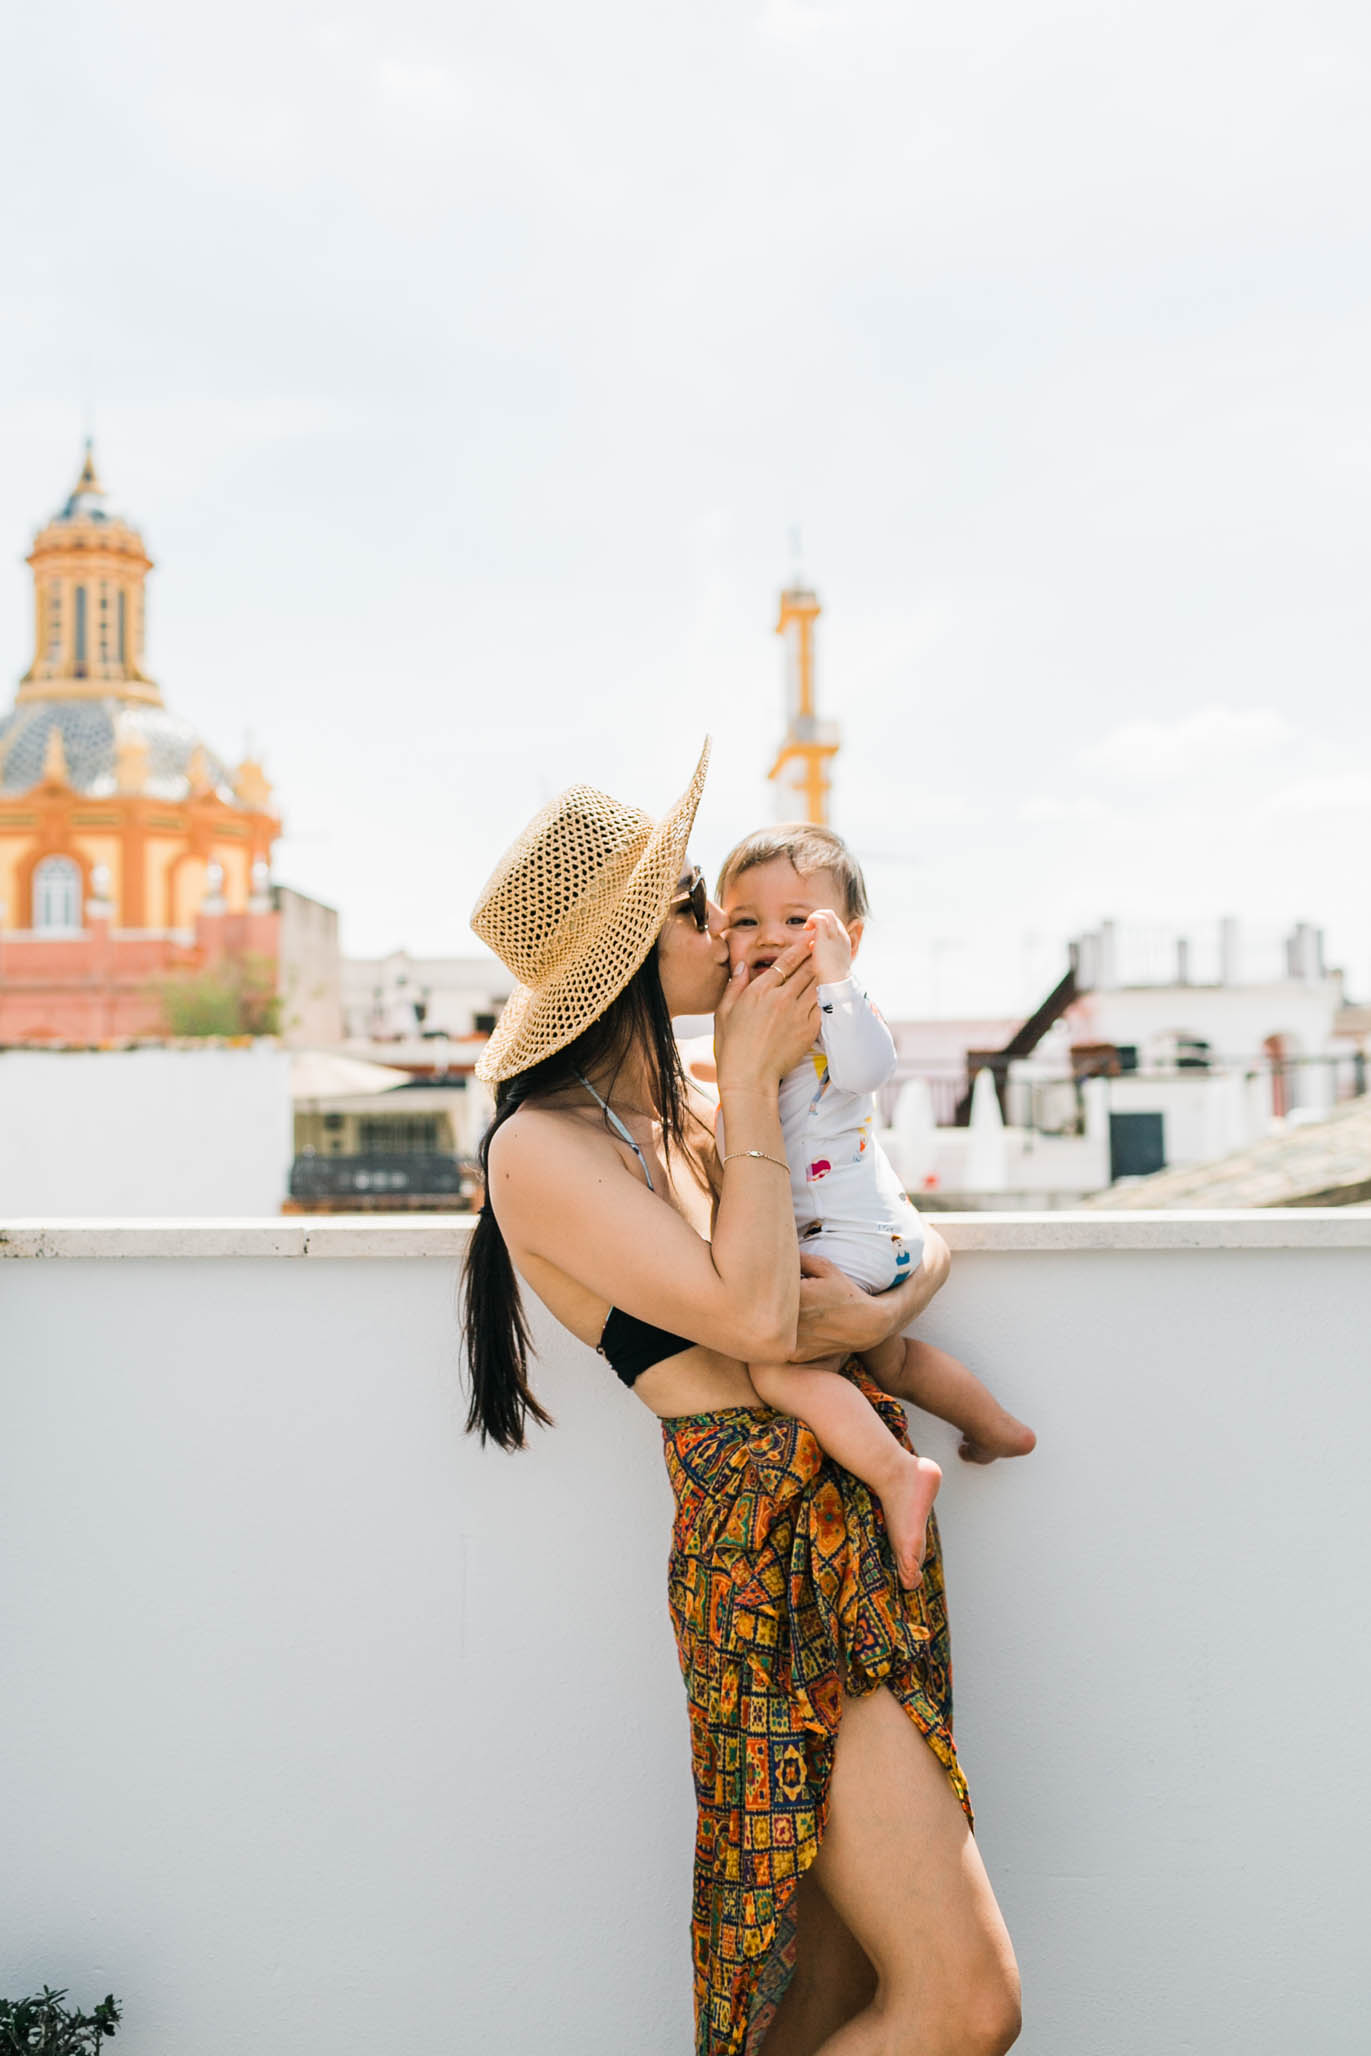 Some of my favorite memories of Sevilla was just hanging out on the deck pool with June and my mama.  We had the perfect view of the old town landscape and just laid there admiring all of it.